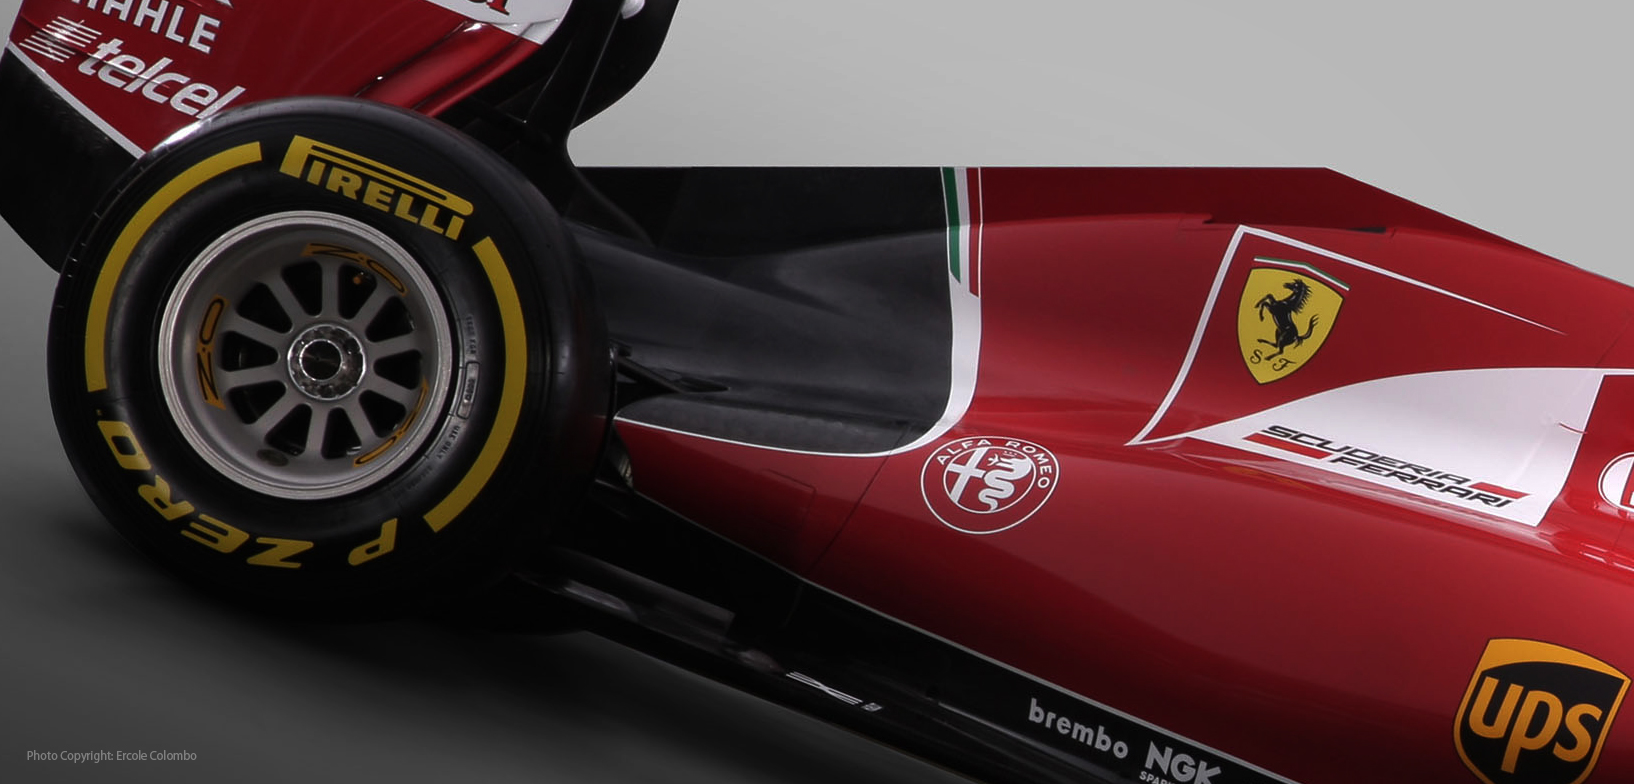 Application of the new logo on the Formula 1 Ferrari SF15